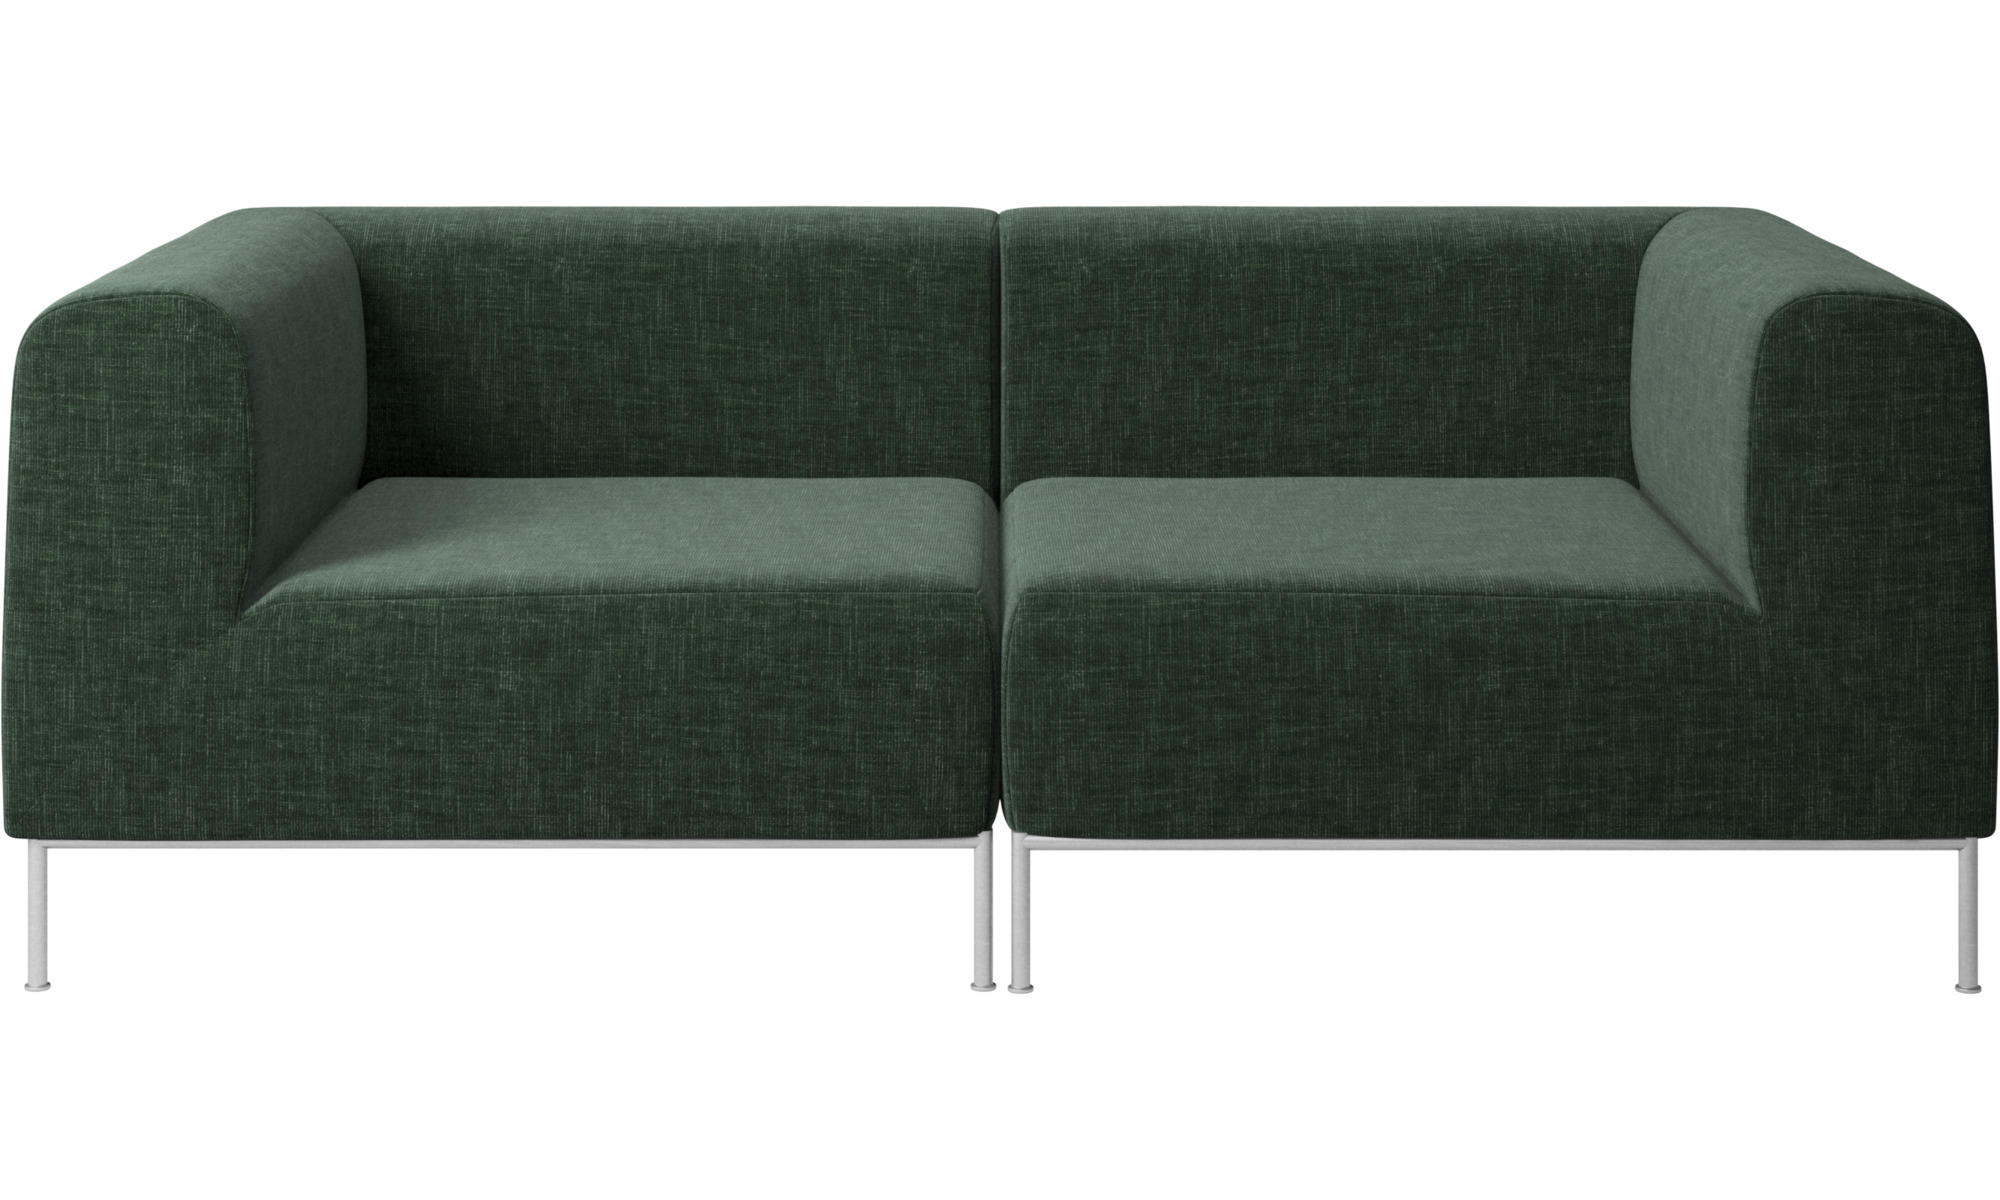 Modular Sofas Miami Sofa Green Fabric